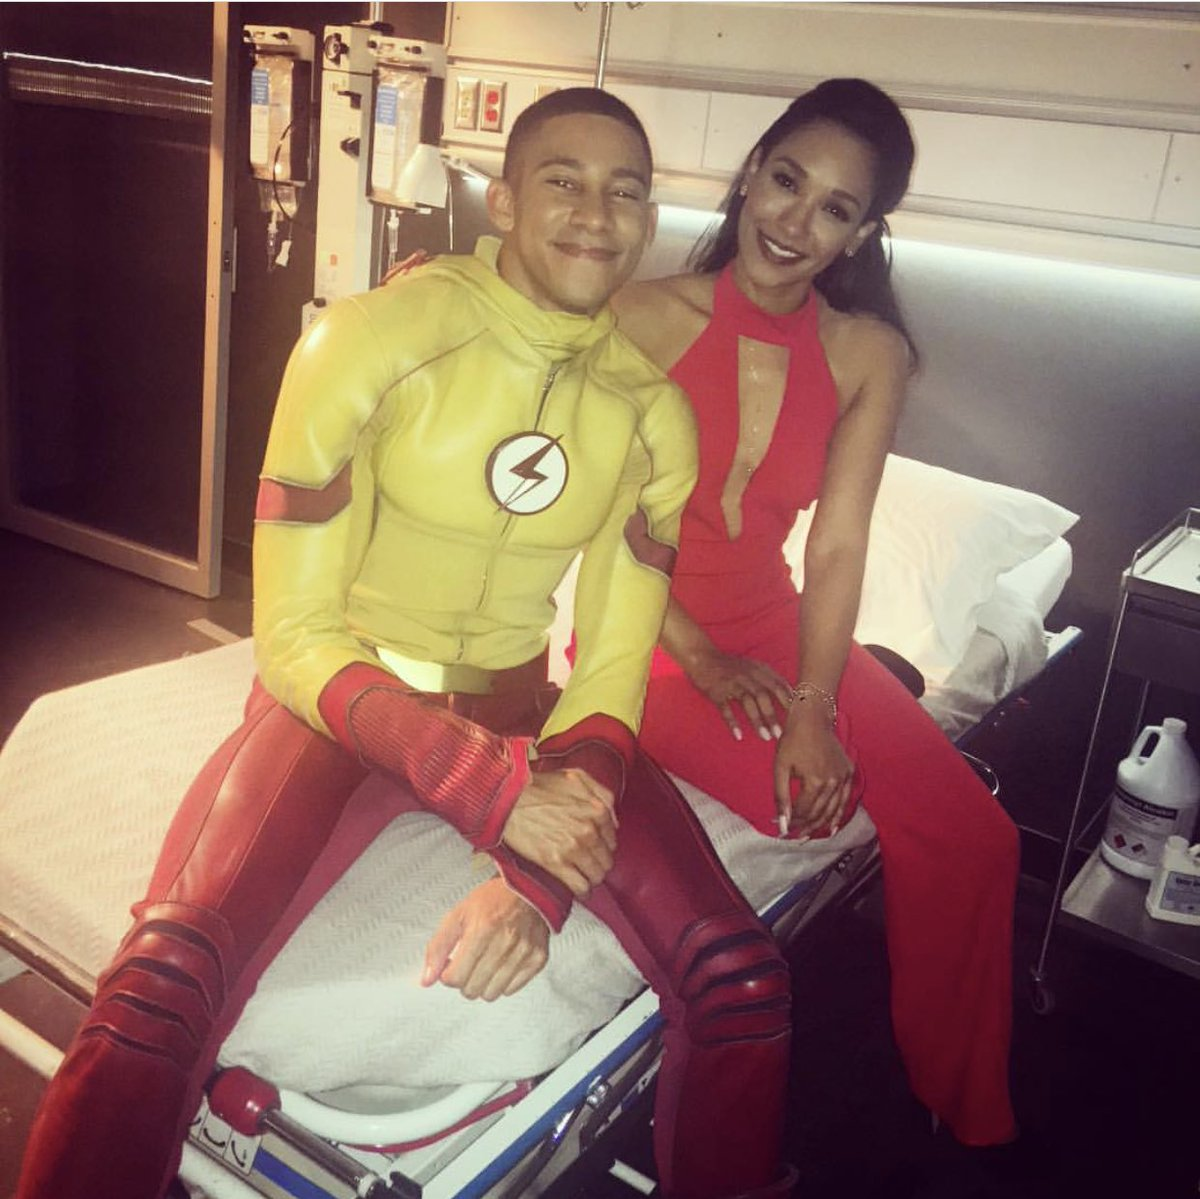 The Wicked West's. Season 3 was one of the BEST @candicepatton @KeiynanLonsdale #candicepatton #theflash https://t.co/cu0nTog9gk